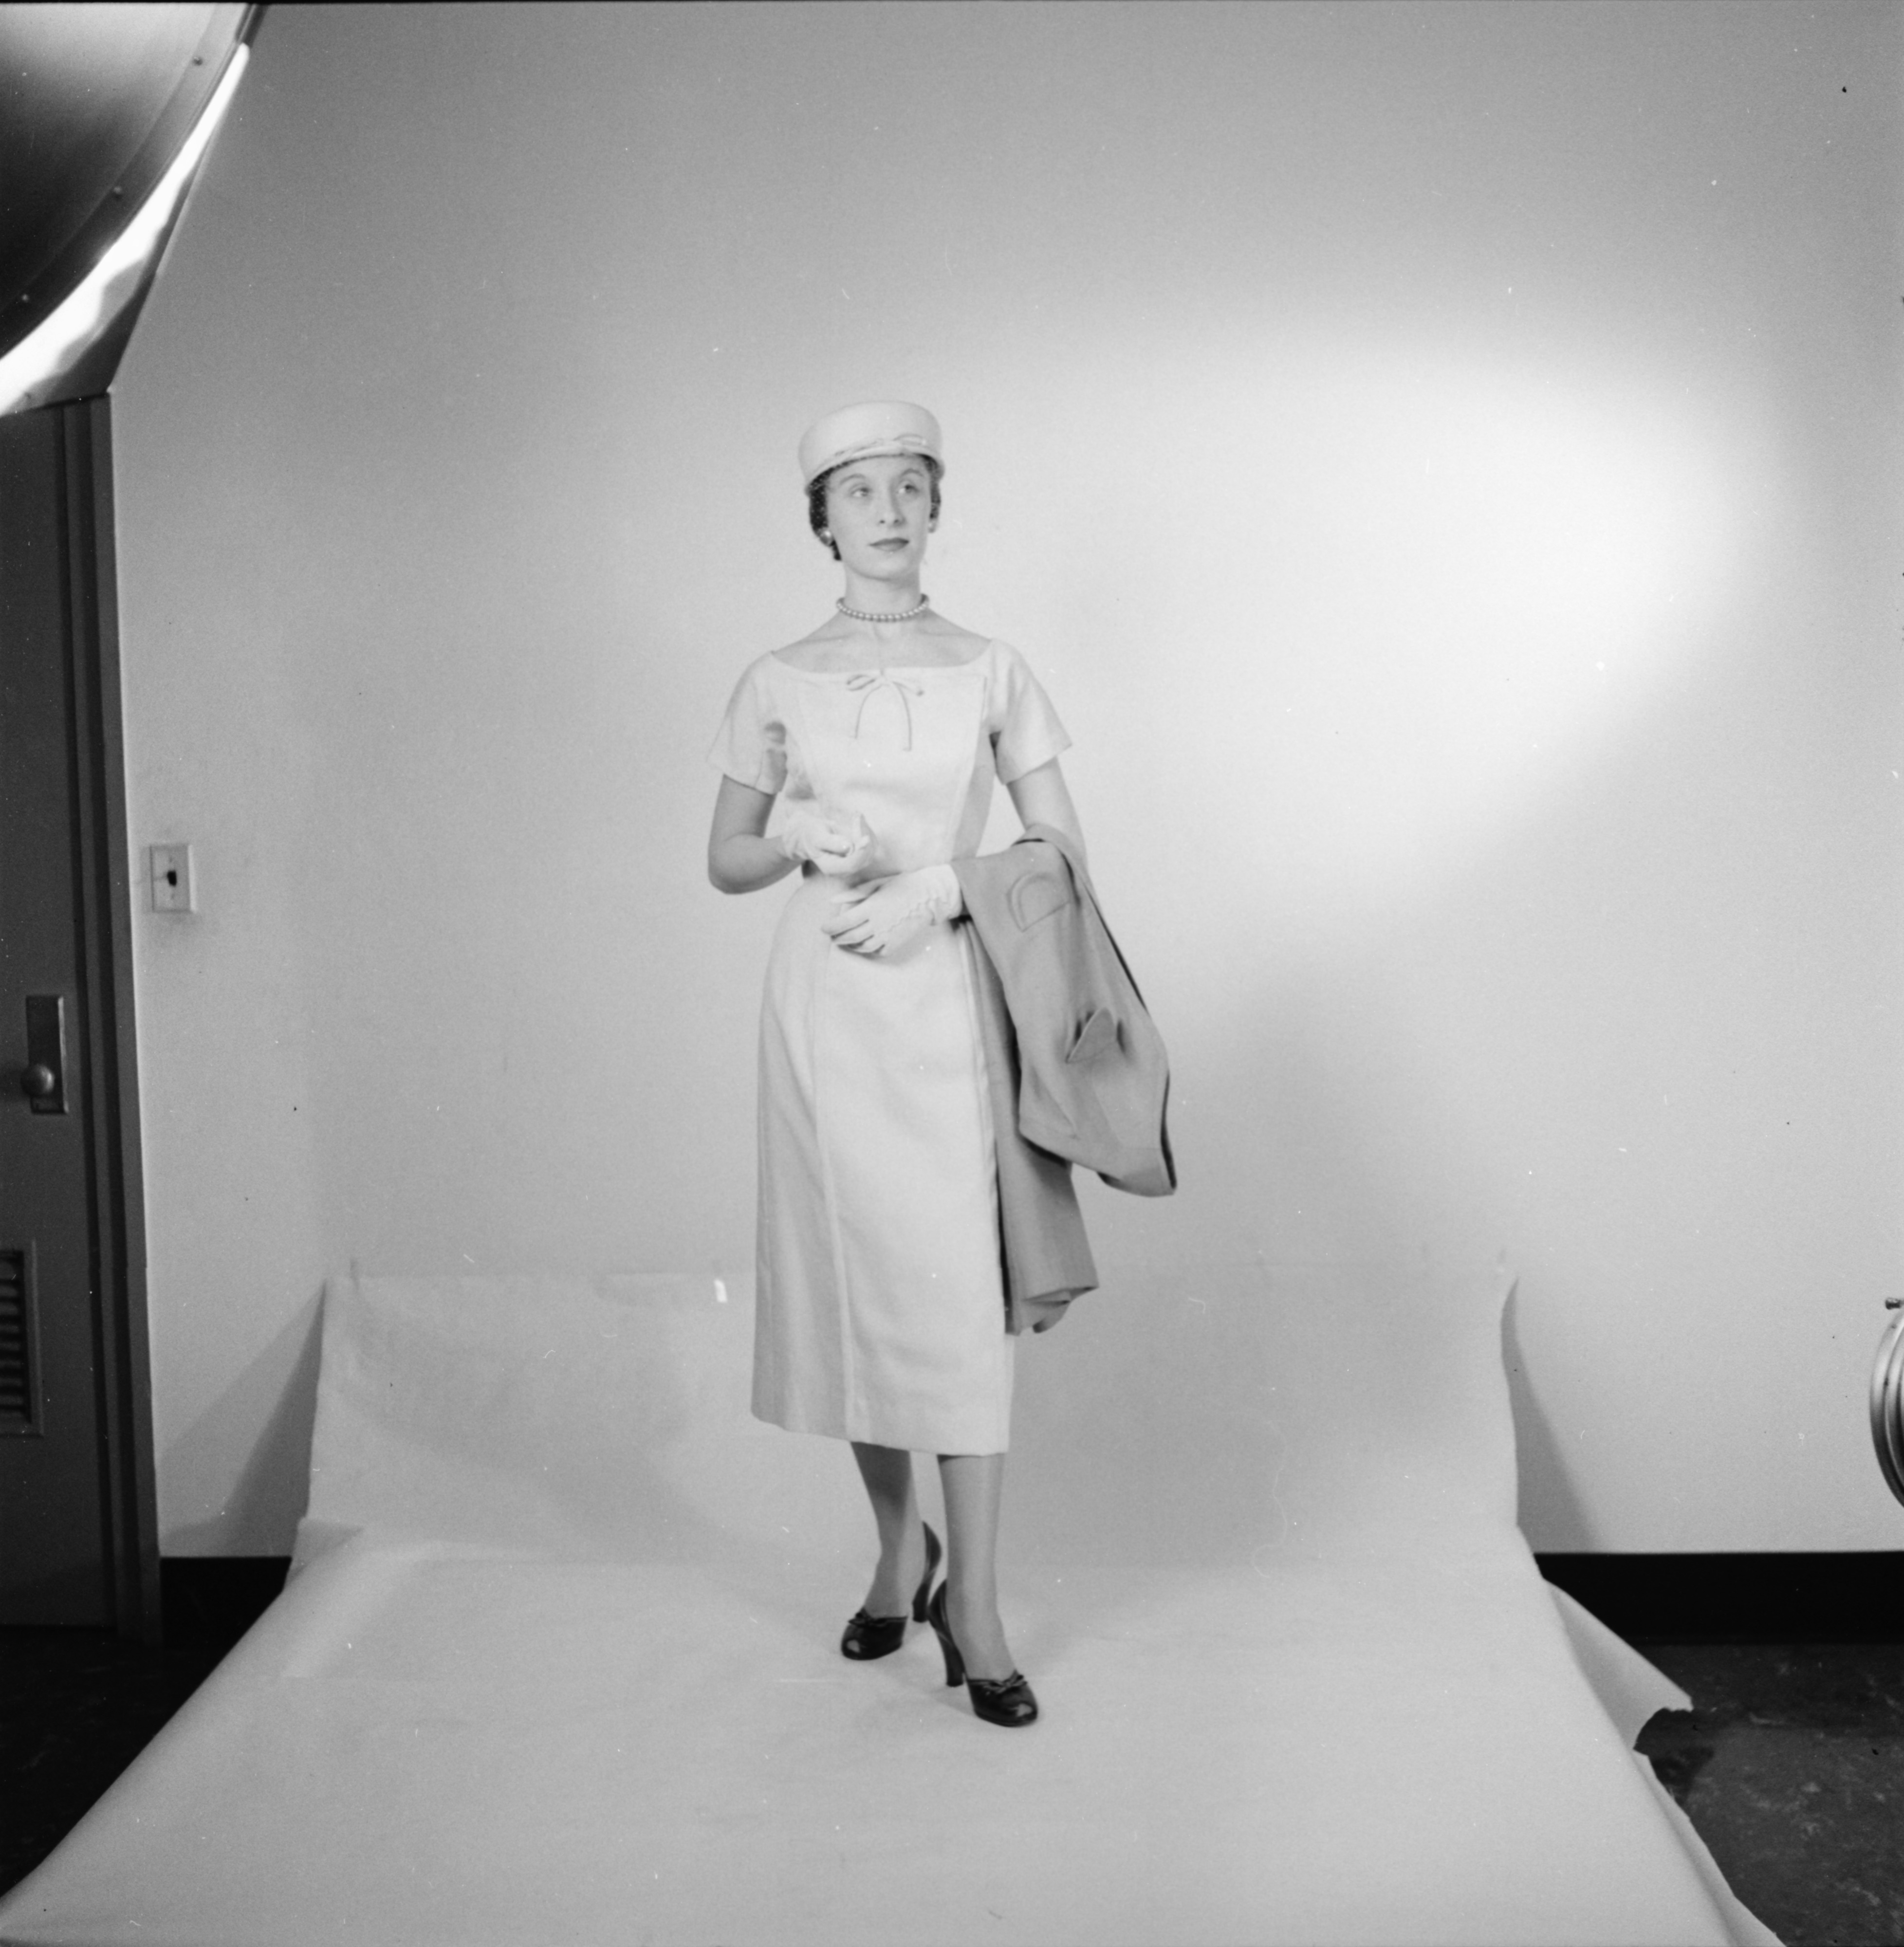 Sandra Norrian models an easy-to-wear ensemble in the Michigan Dames' Fashion Show, March 1957 image